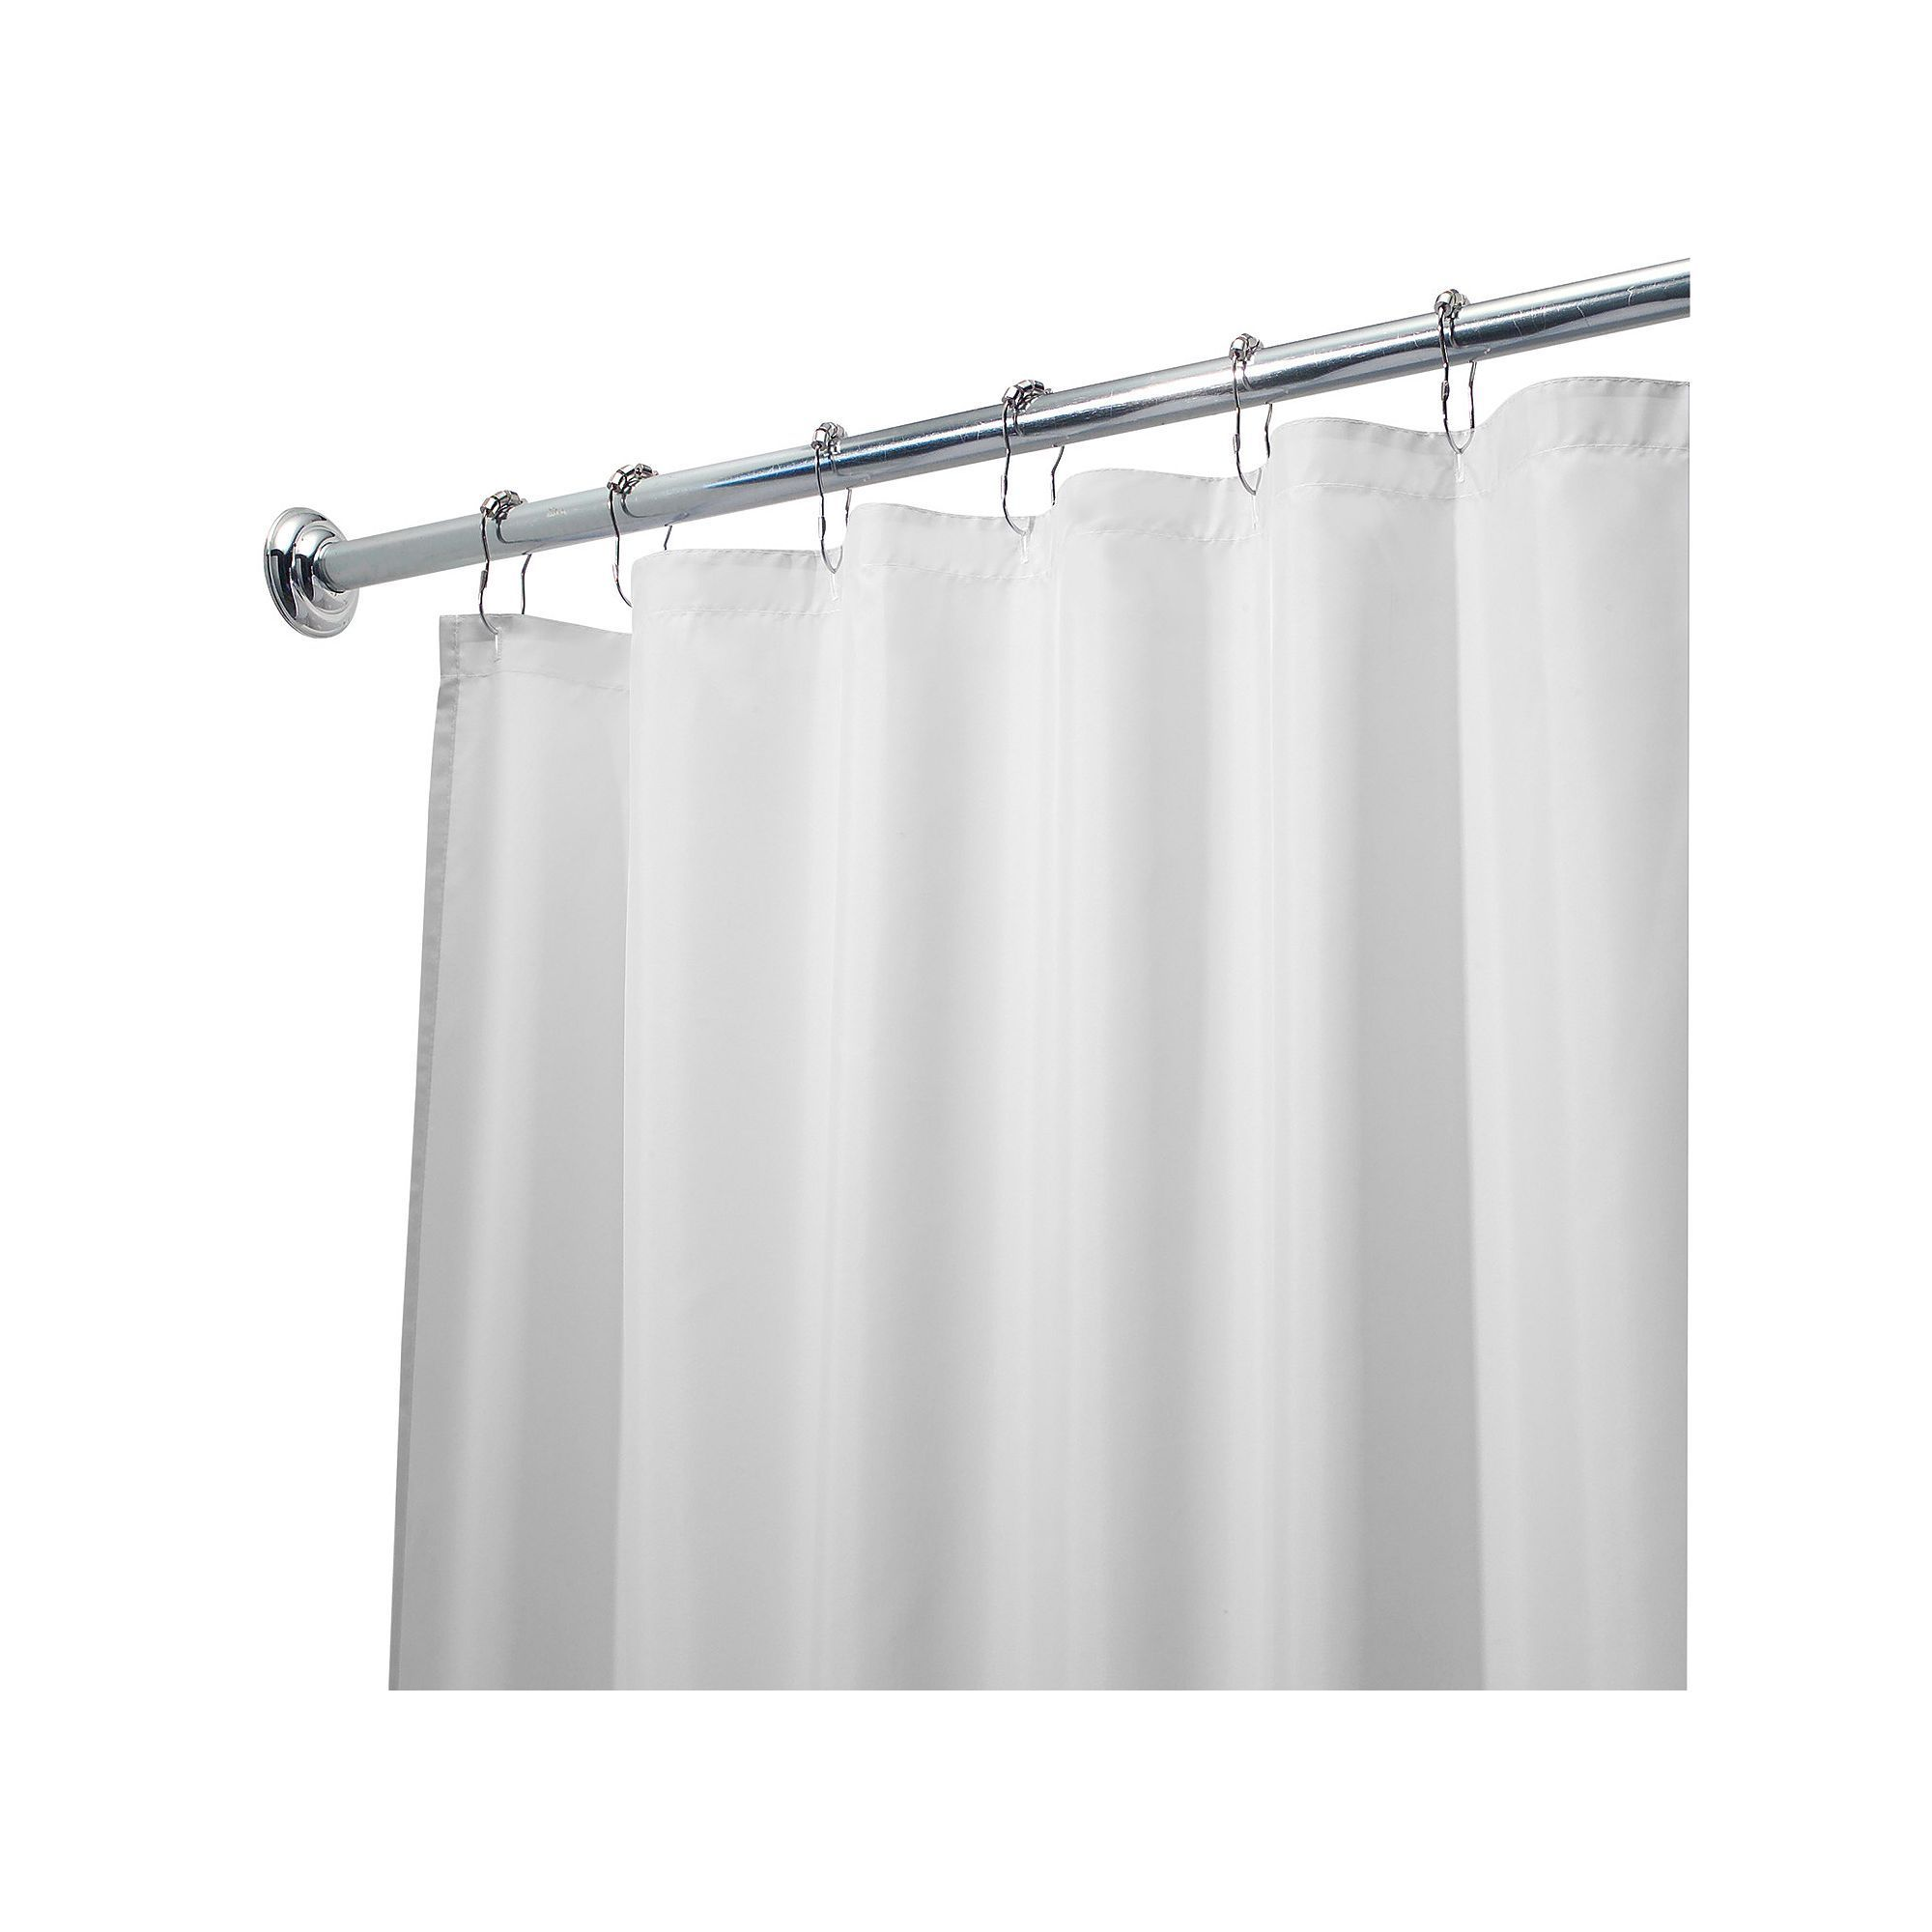 Waterproof Fabric Shower Curtain Liner 72 X 84 Fabric